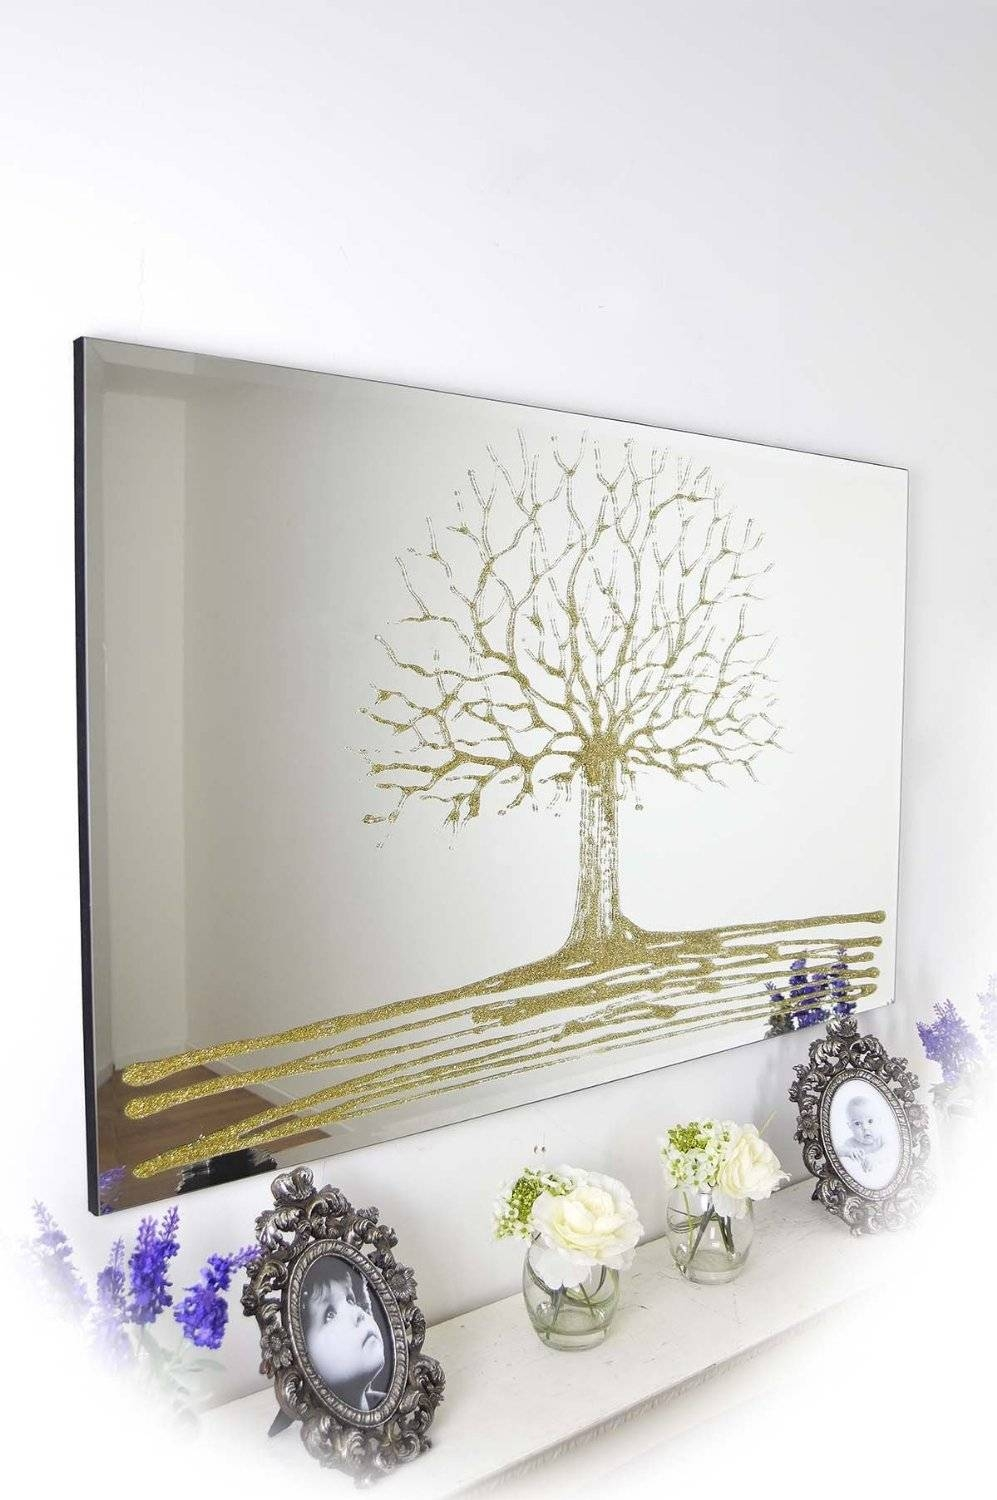 16 Ornate Mirrors For Your Home | Qosy with Swarovski Mirrors (Image 2 of 25)